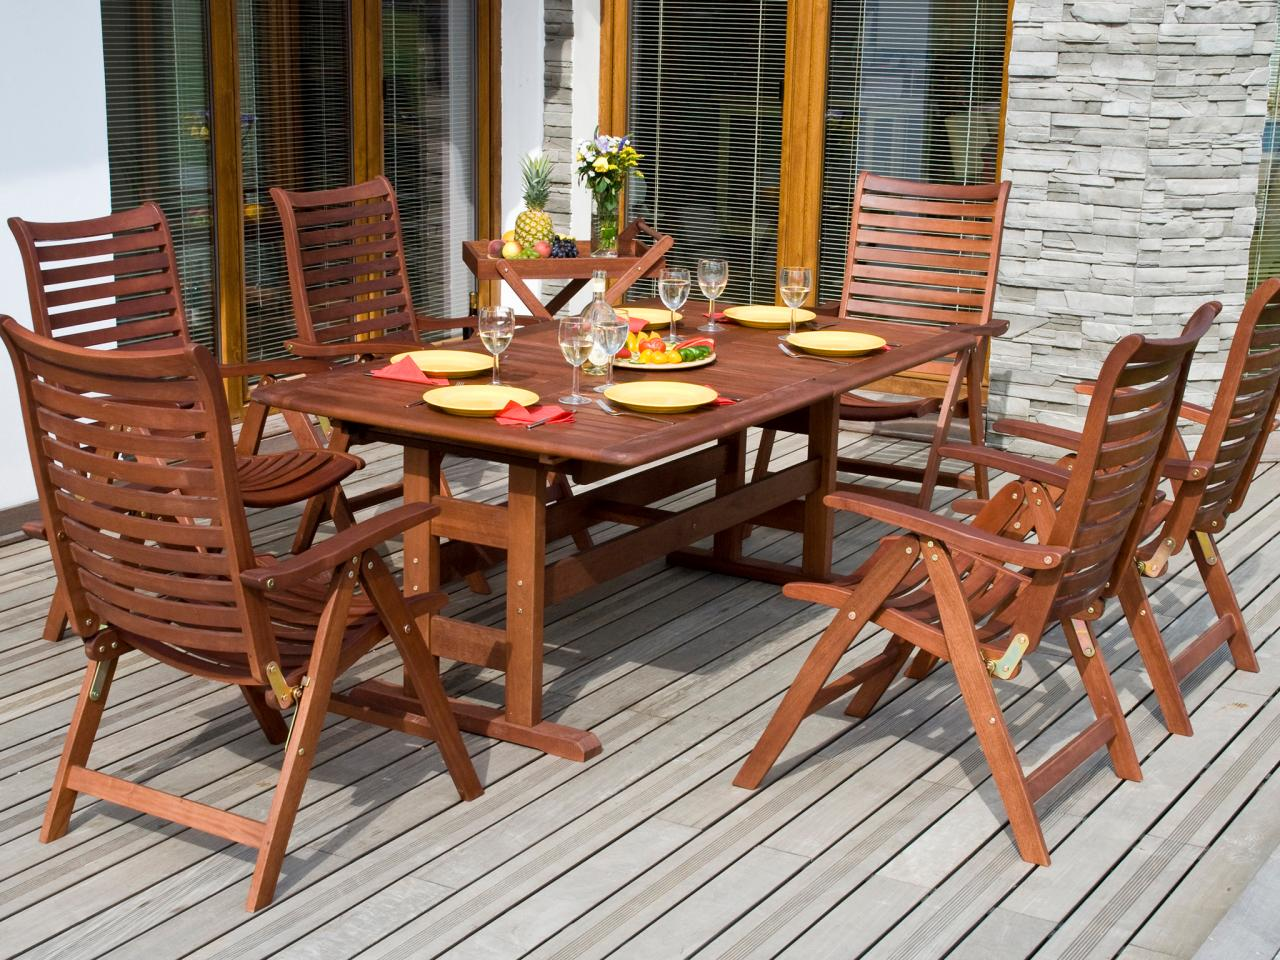 Teak patio furniture hgtv for Teak wood patio furniture